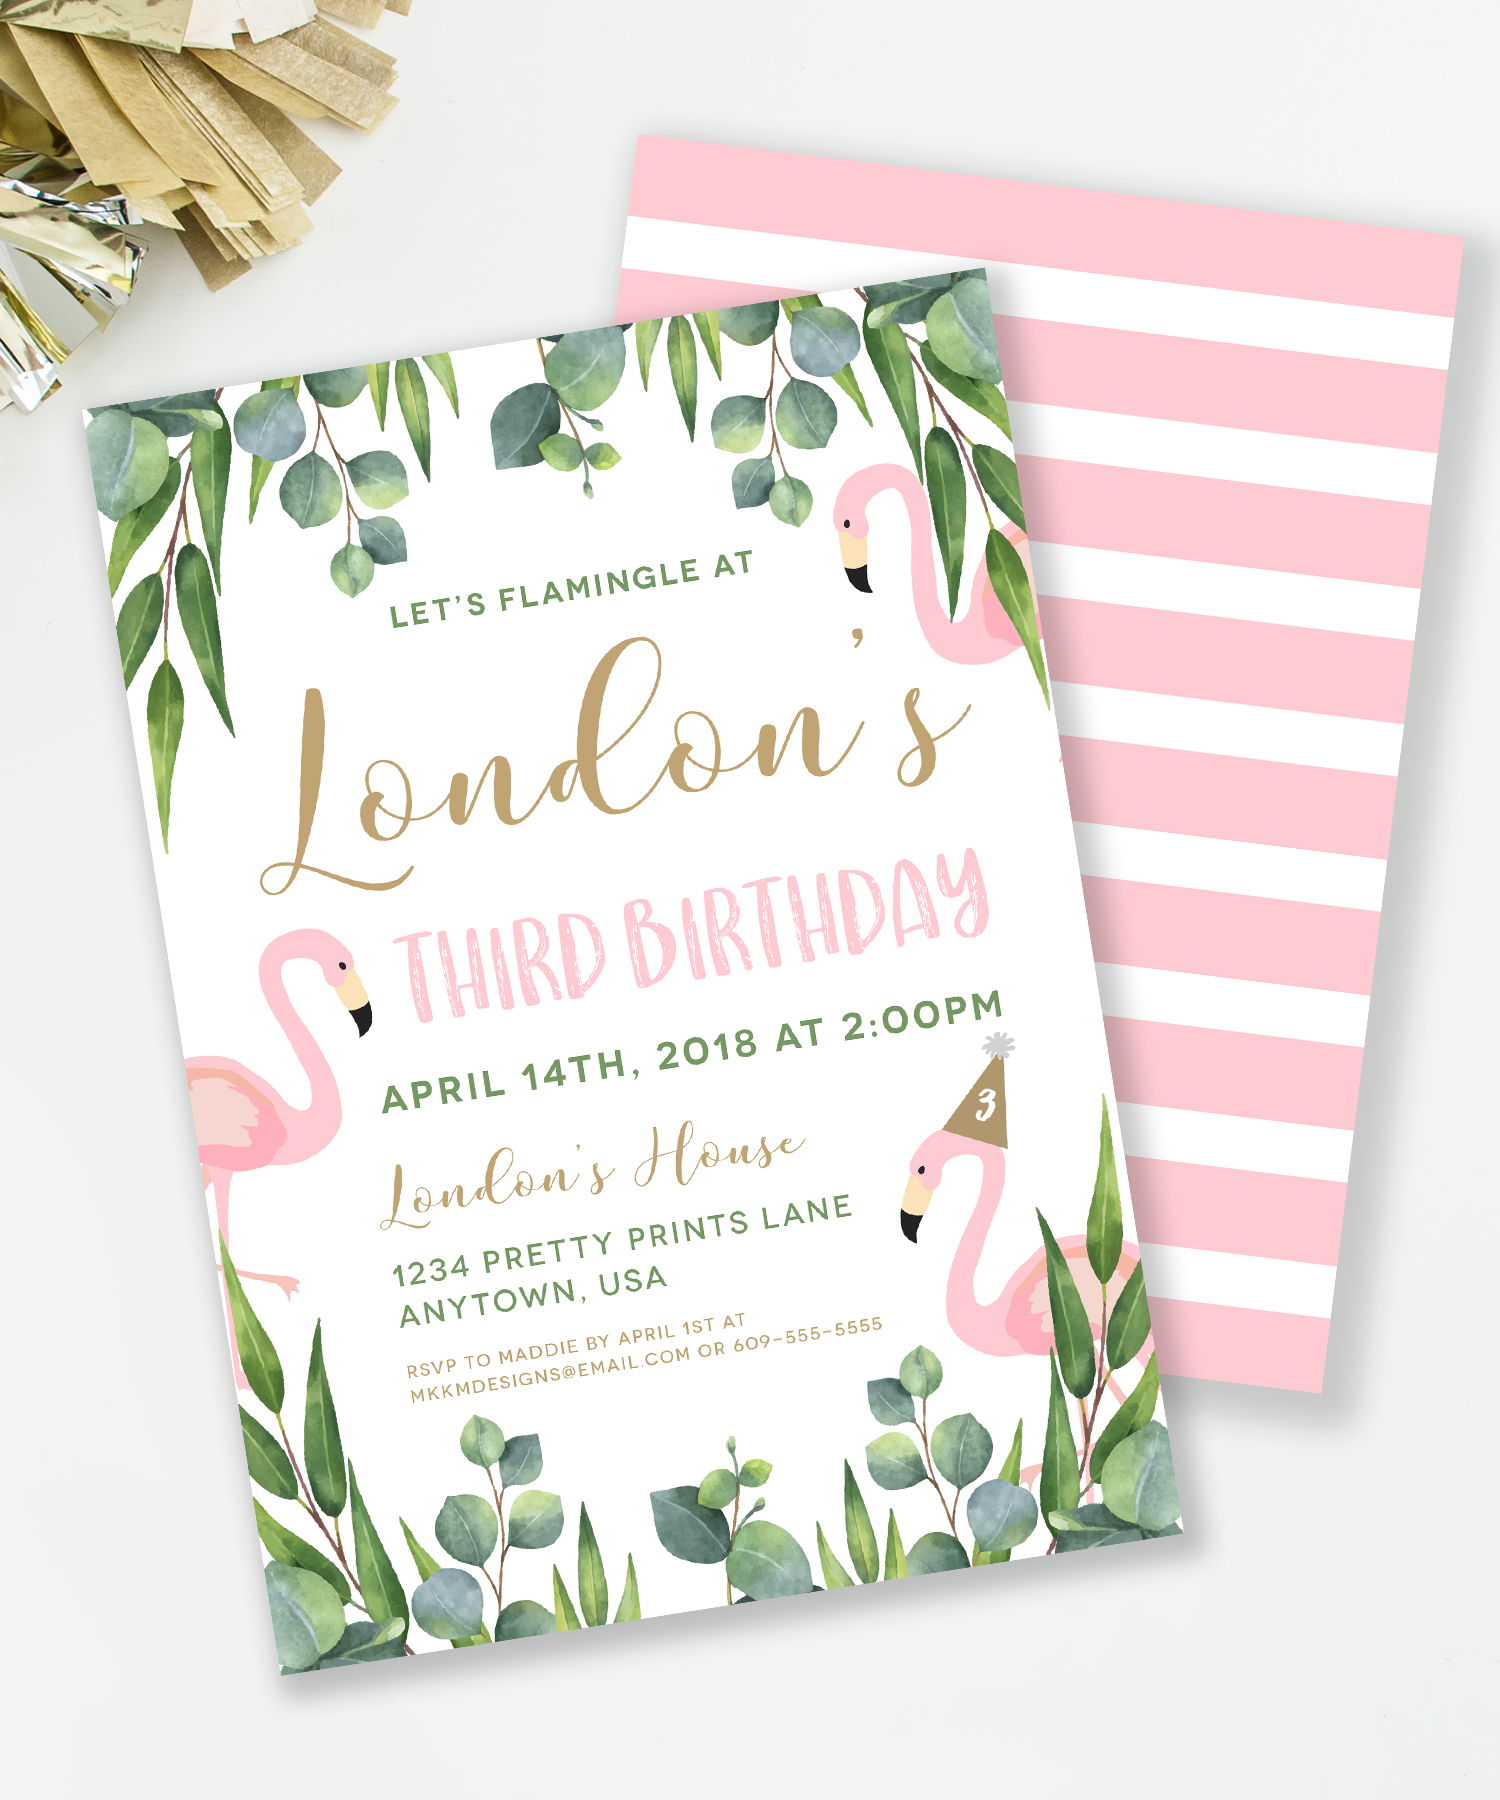 Let's Flamingle at a Flamingo themed birthday party // mkkmdesigns